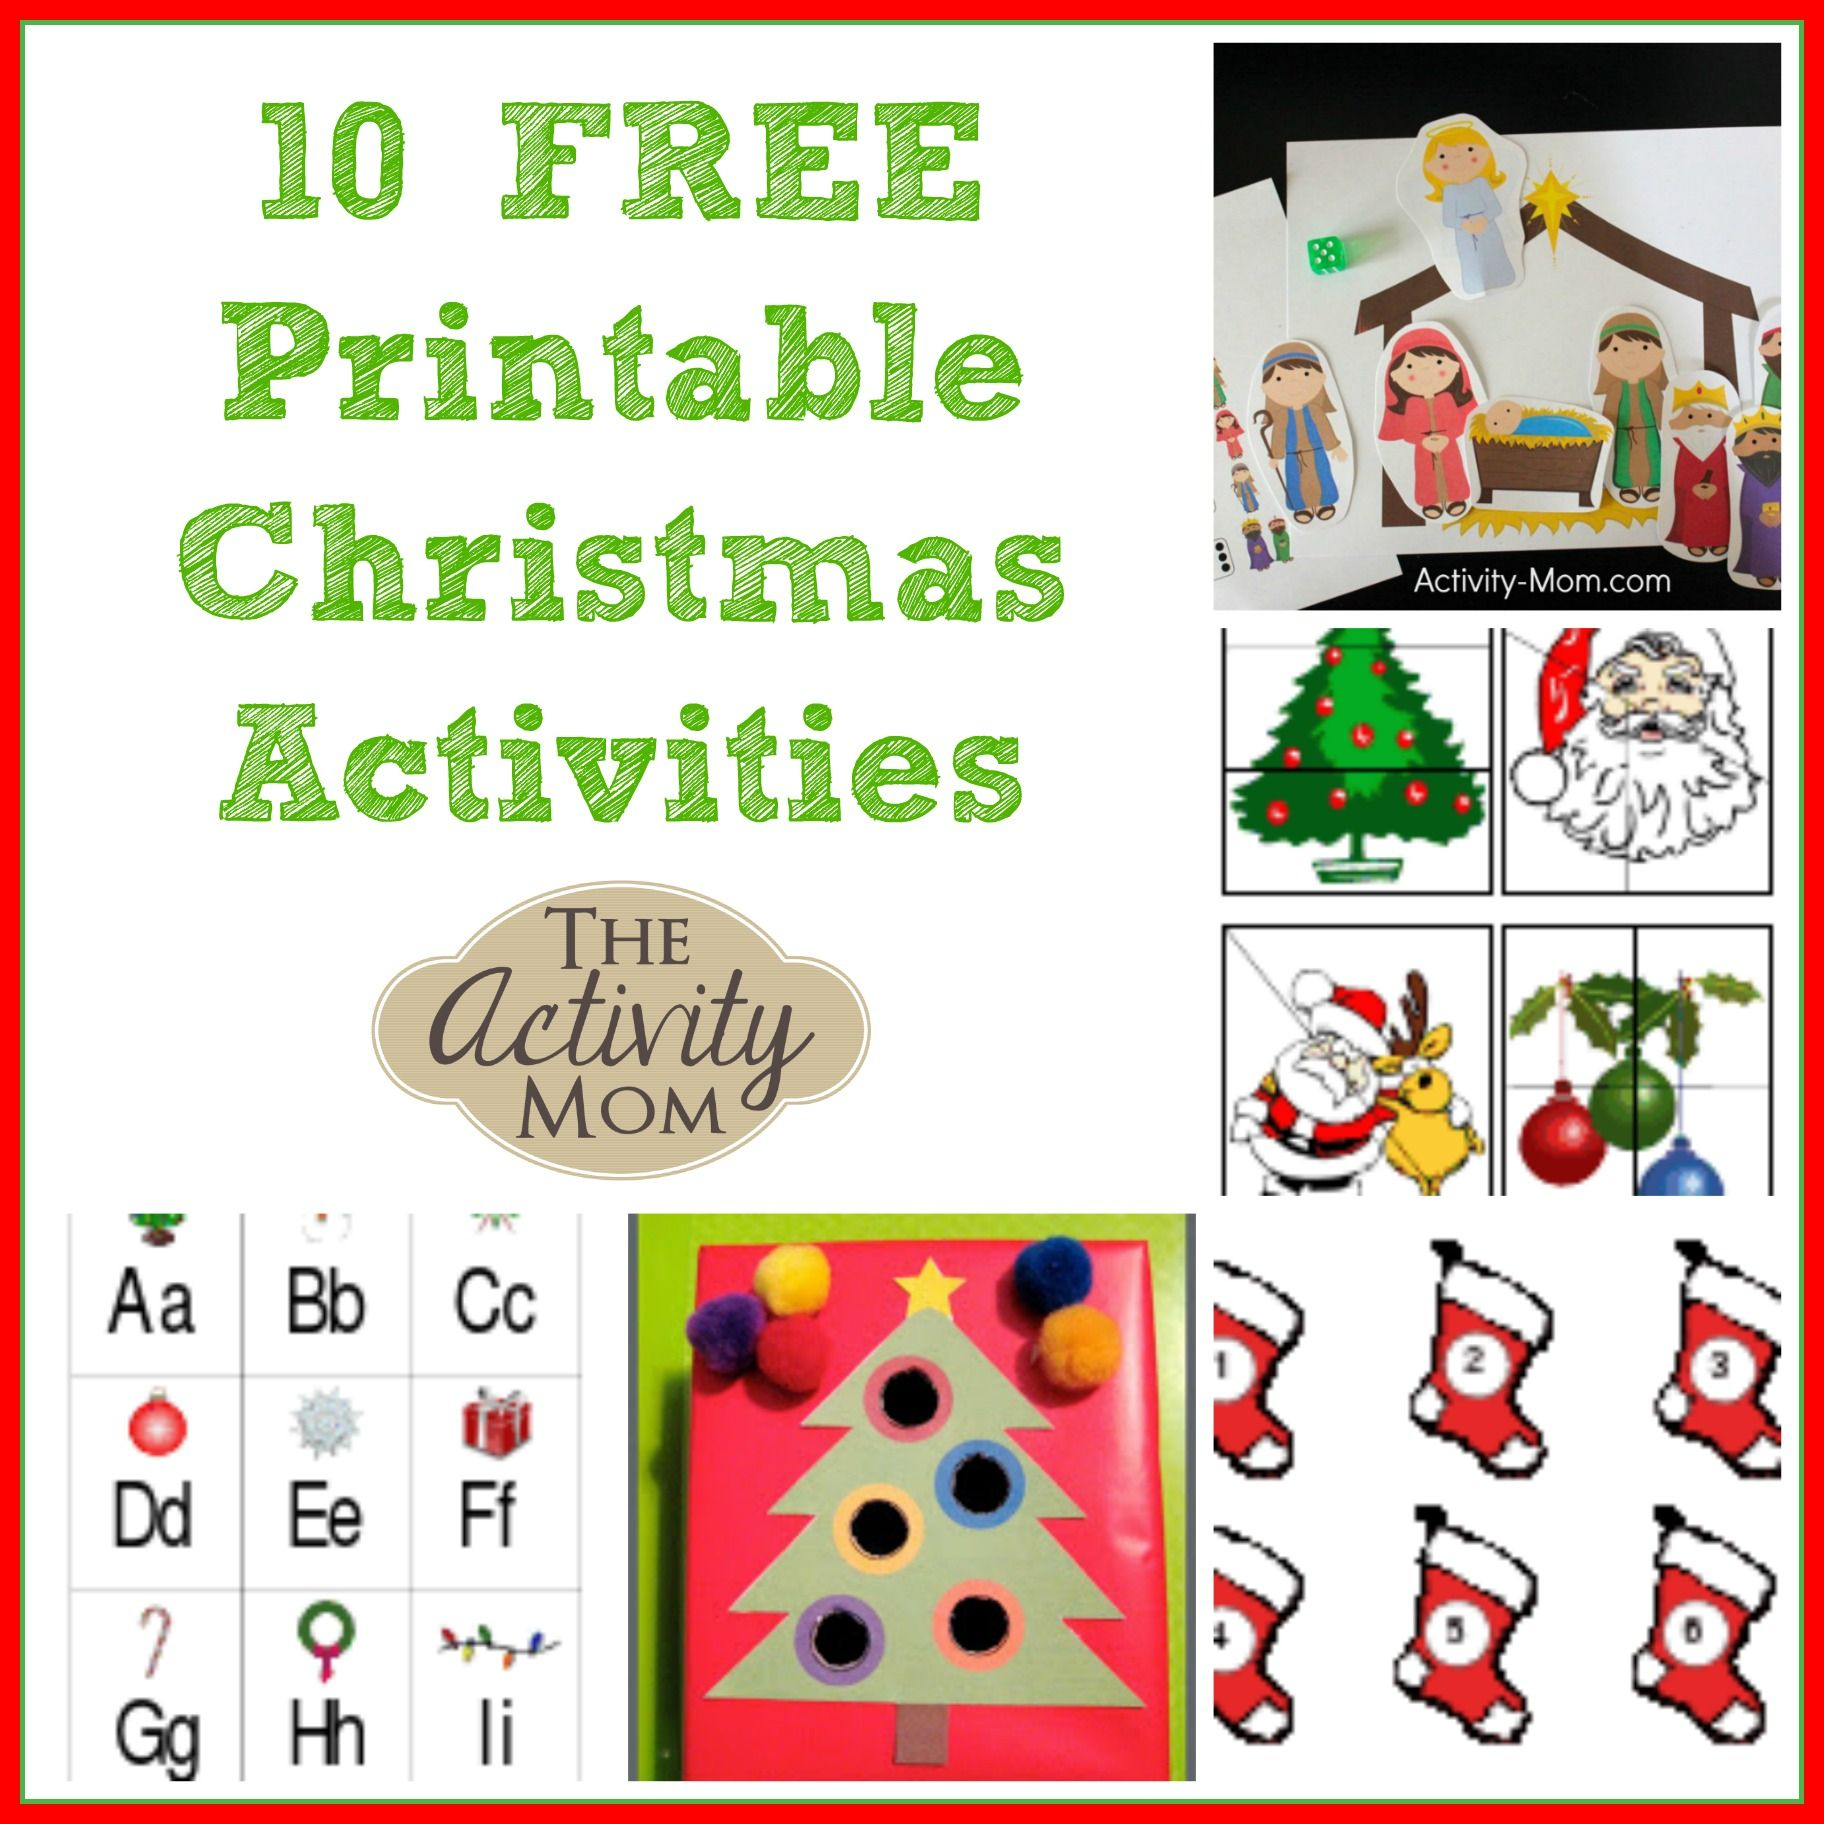 10 Free Printable Christmas Activities for Kids | Learning ...